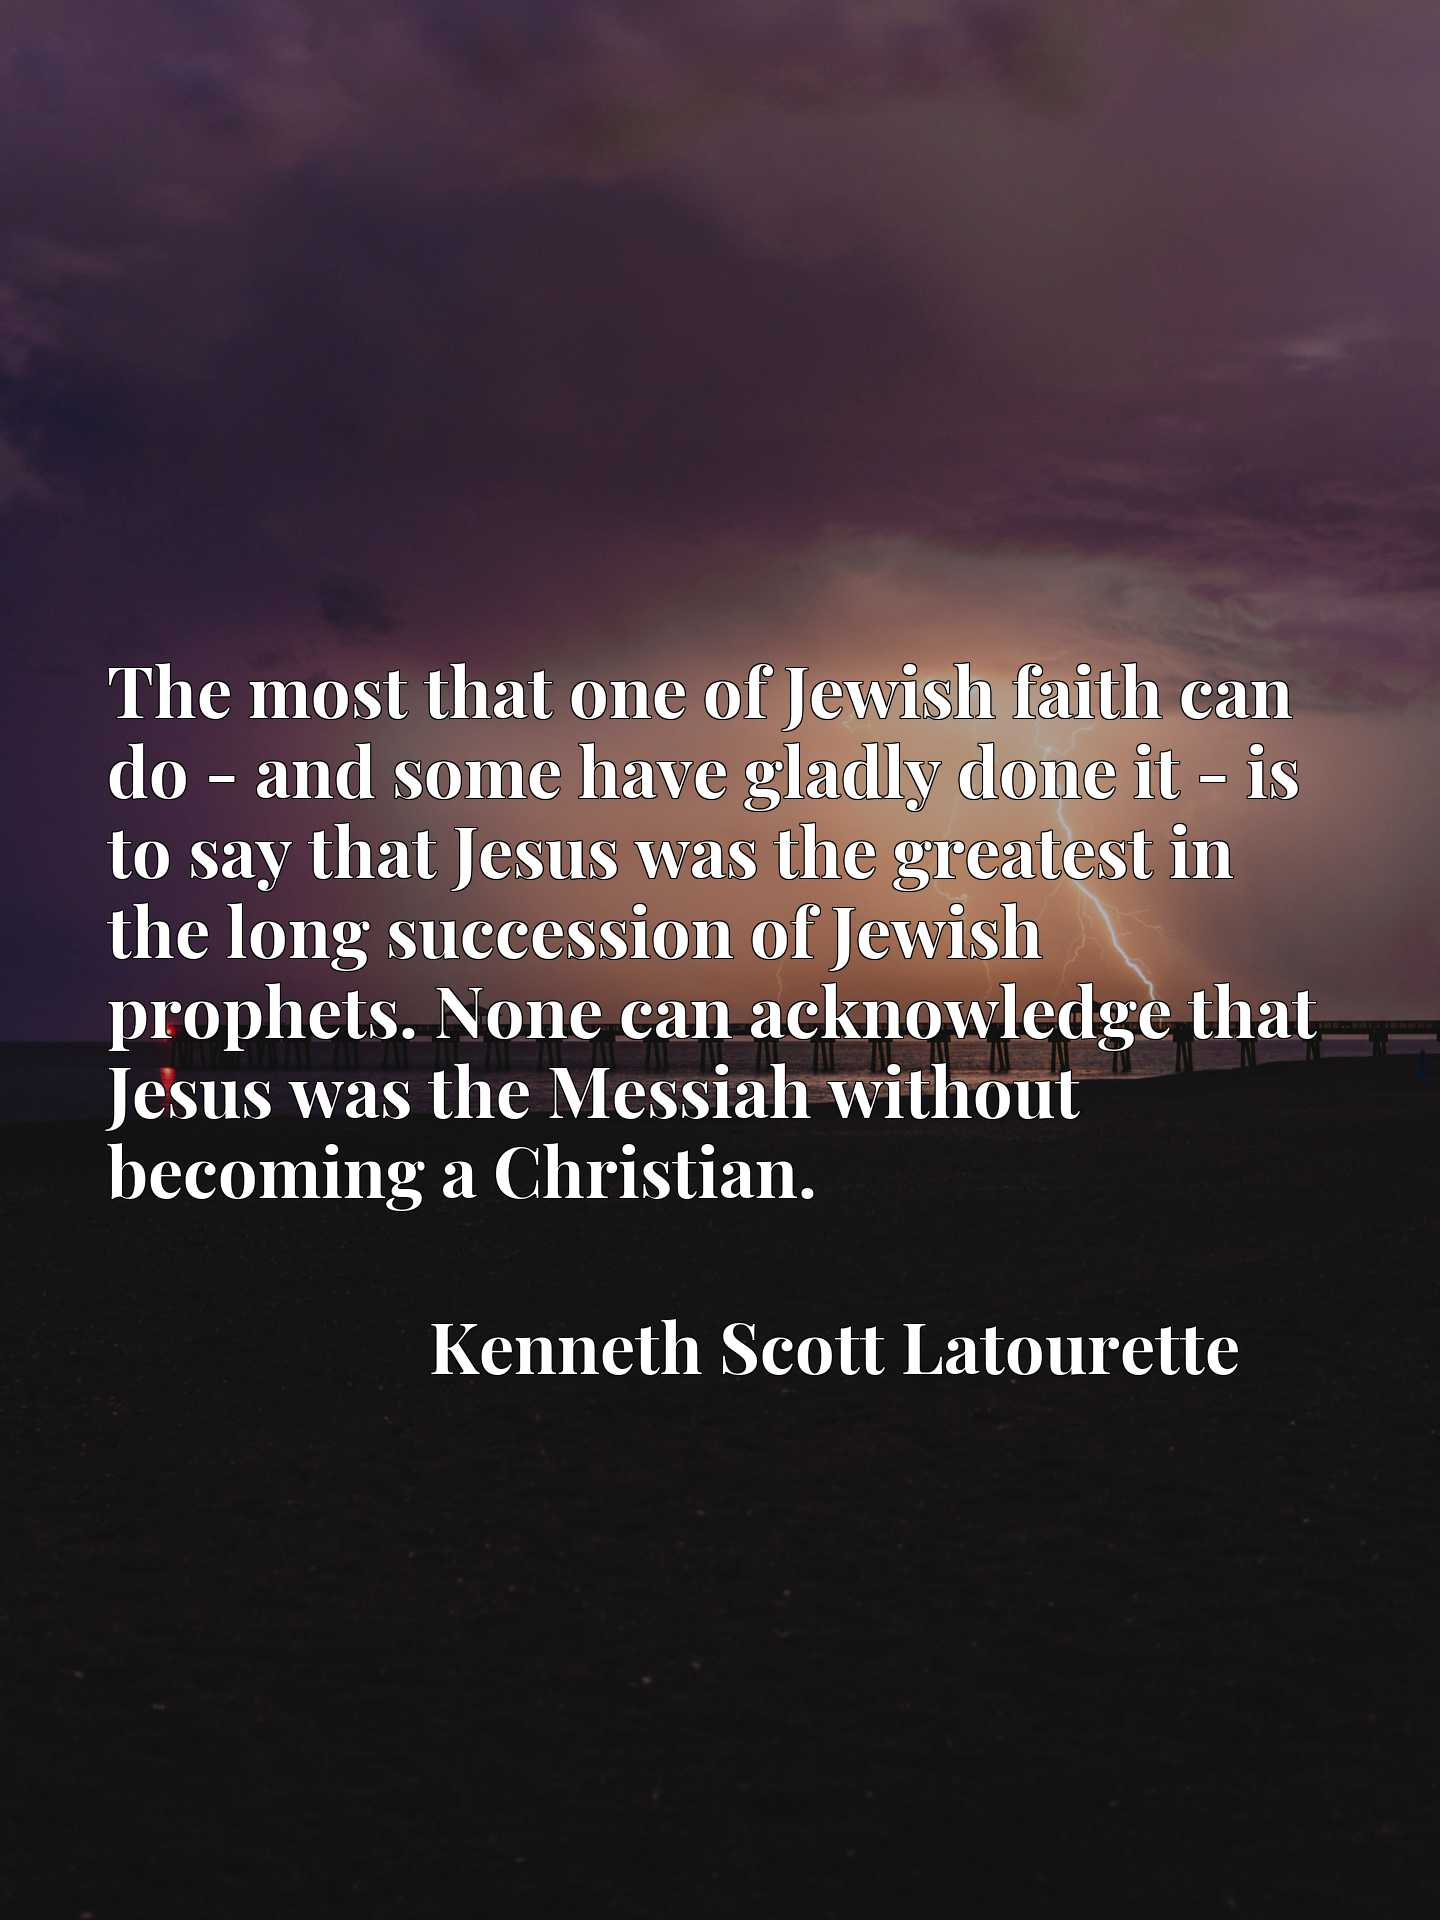 The most that one of Jewish faith can do - and some have gladly done it - is to say that Jesus was the greatest in the long succession of Jewish prophets. None can acknowledge that Jesus was the Messiah without becoming a Christian.